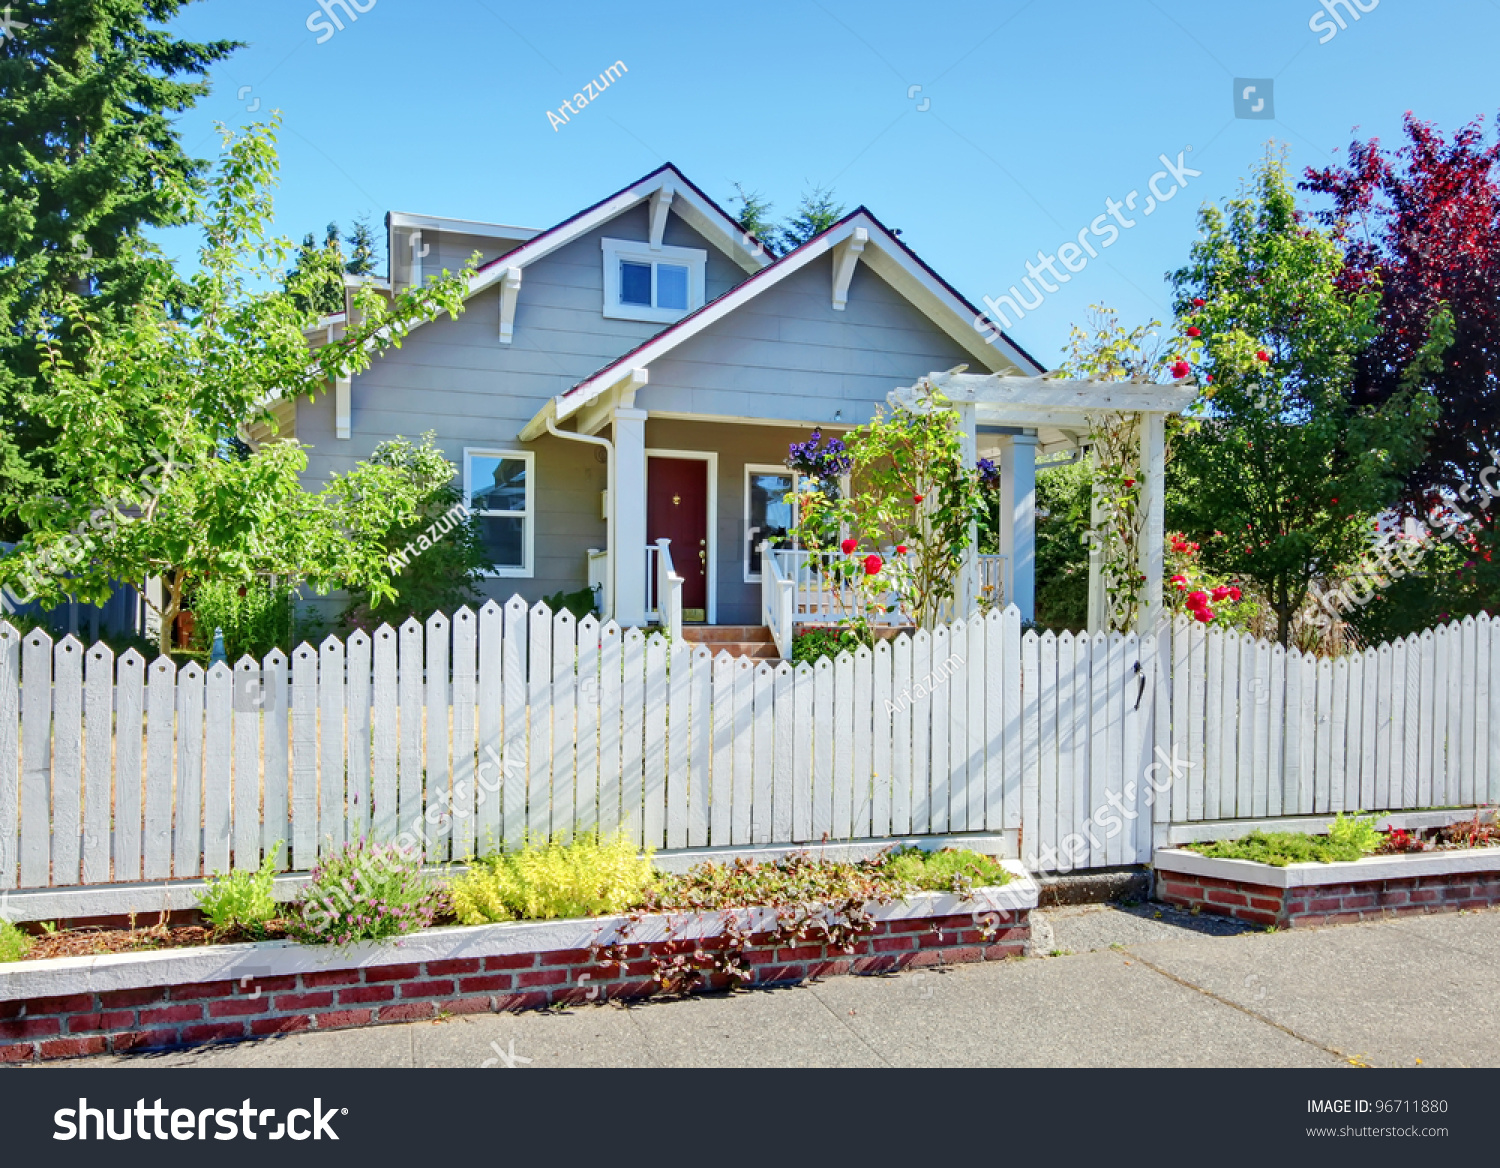 Excellent Grey Small Cute House White Fence Stock Photo 96711880 Shutterstock Largest Home Design Picture Inspirations Pitcheantrous